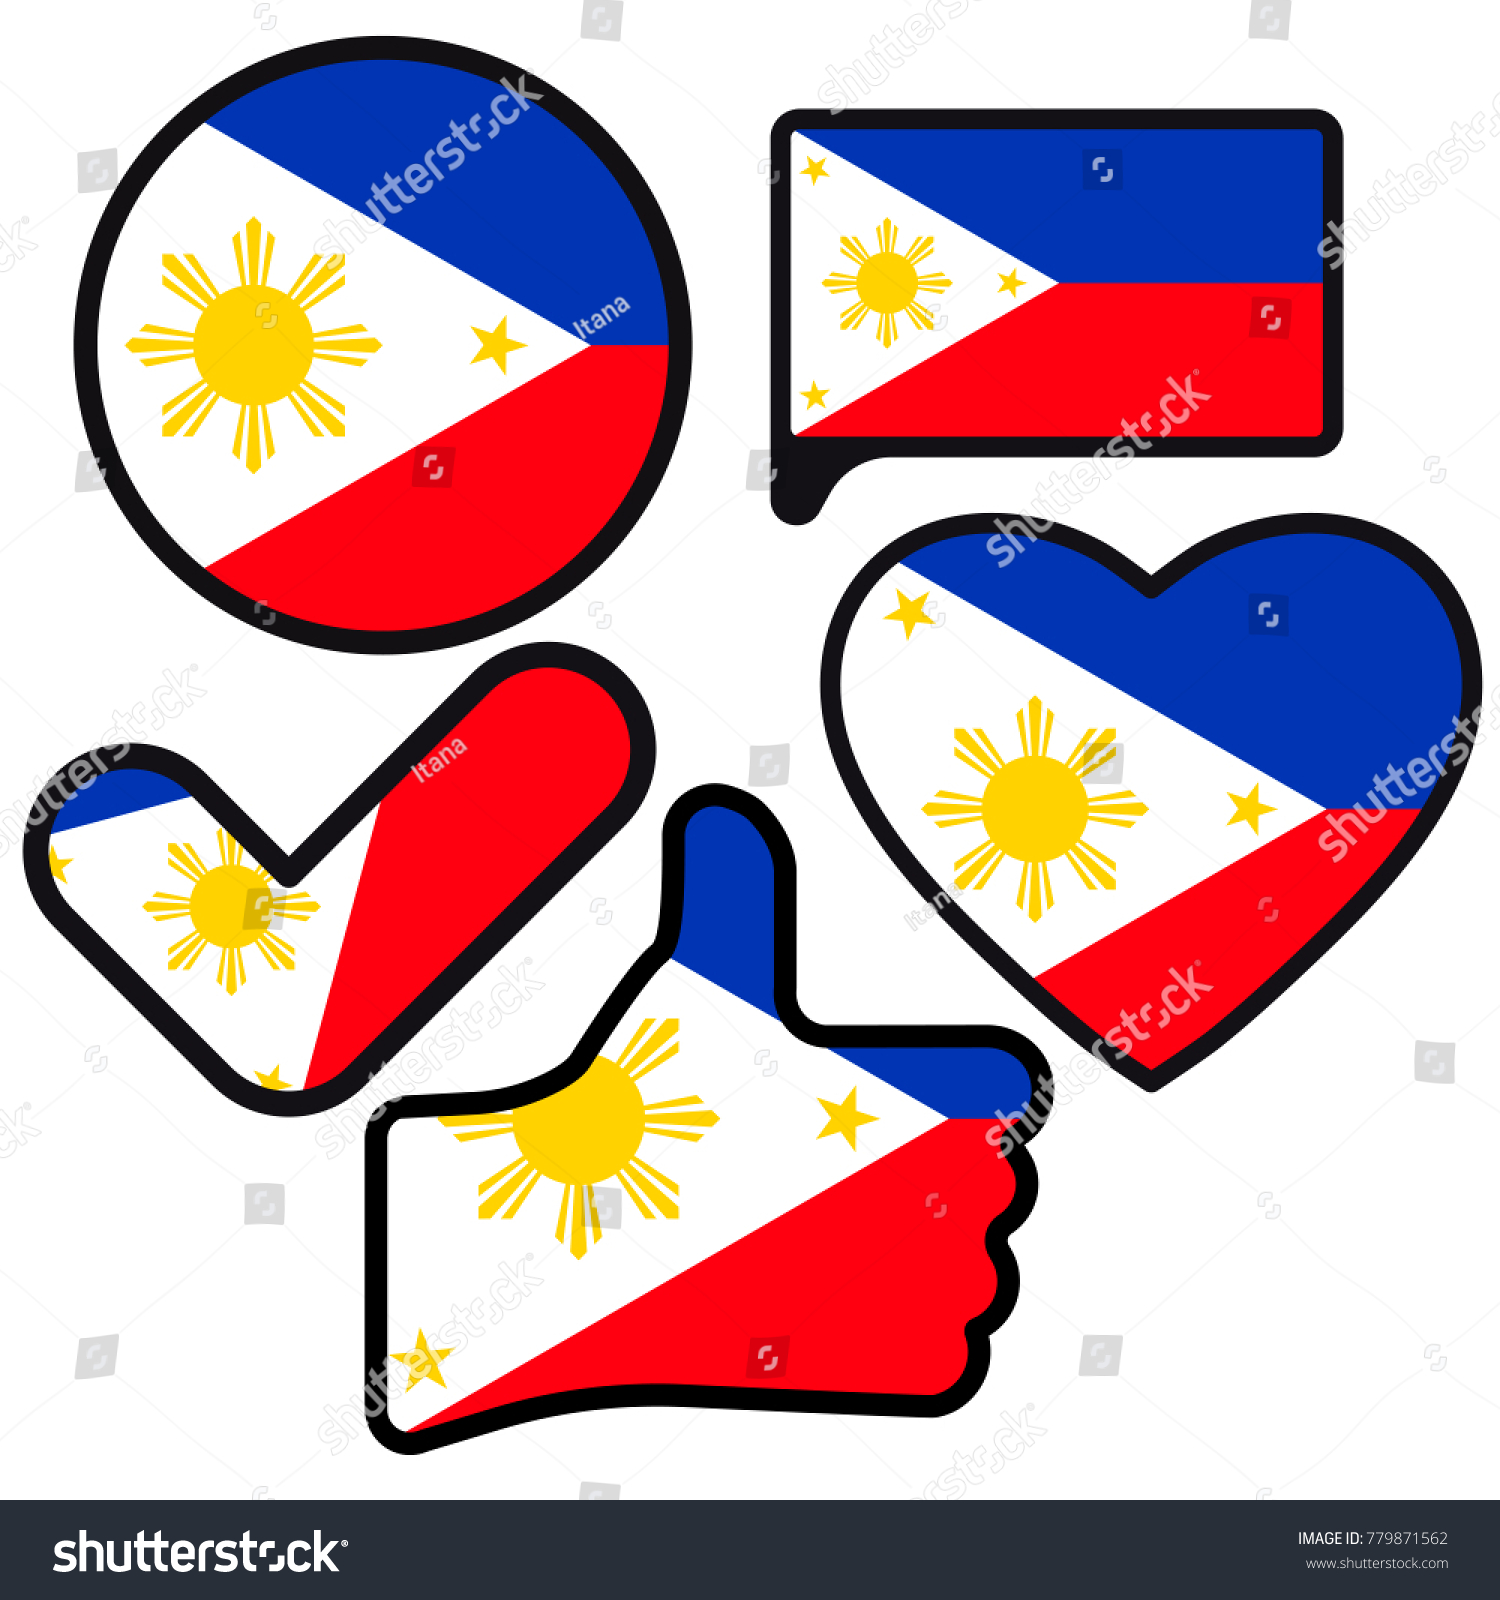 Flag philippines shape button heart like stock illustration flag of philippines in the shape of button heart like check mark buycottarizona Images